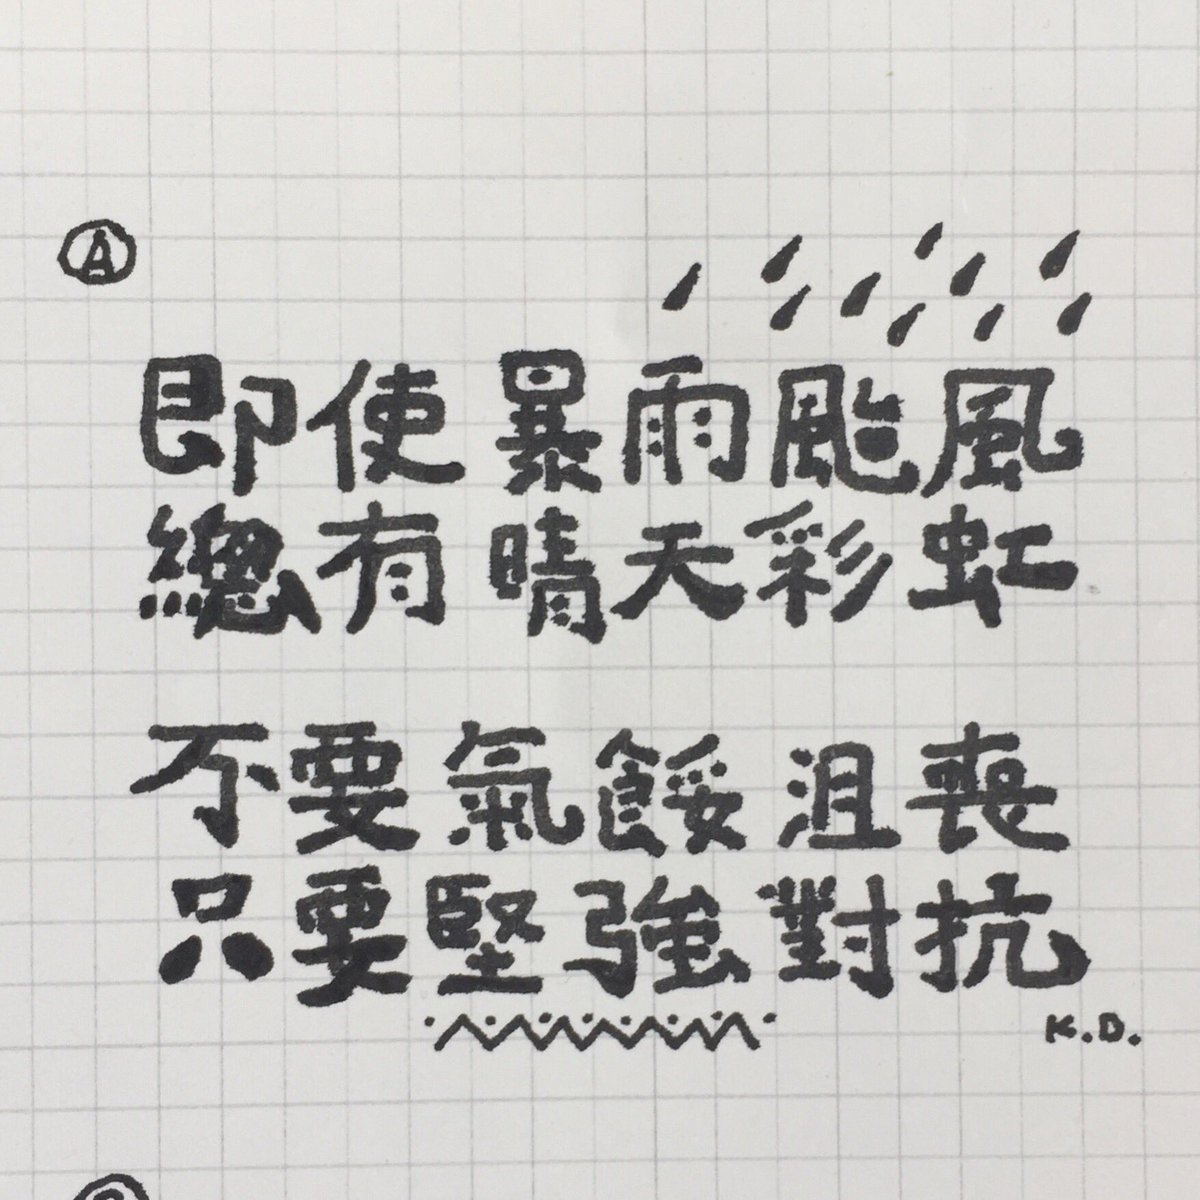 A or B? 文宣中  (Eng translation) A: There'll be 🌈 after ⛈ storm,  don't be discouraged but fight strong 💪🏽. B: There'll be 🌈 after ☔️ storm,  CCP Tyranny will one day be gone. #HongKong #香港人 #cantonese https://t.co/I6qGa5yb1z